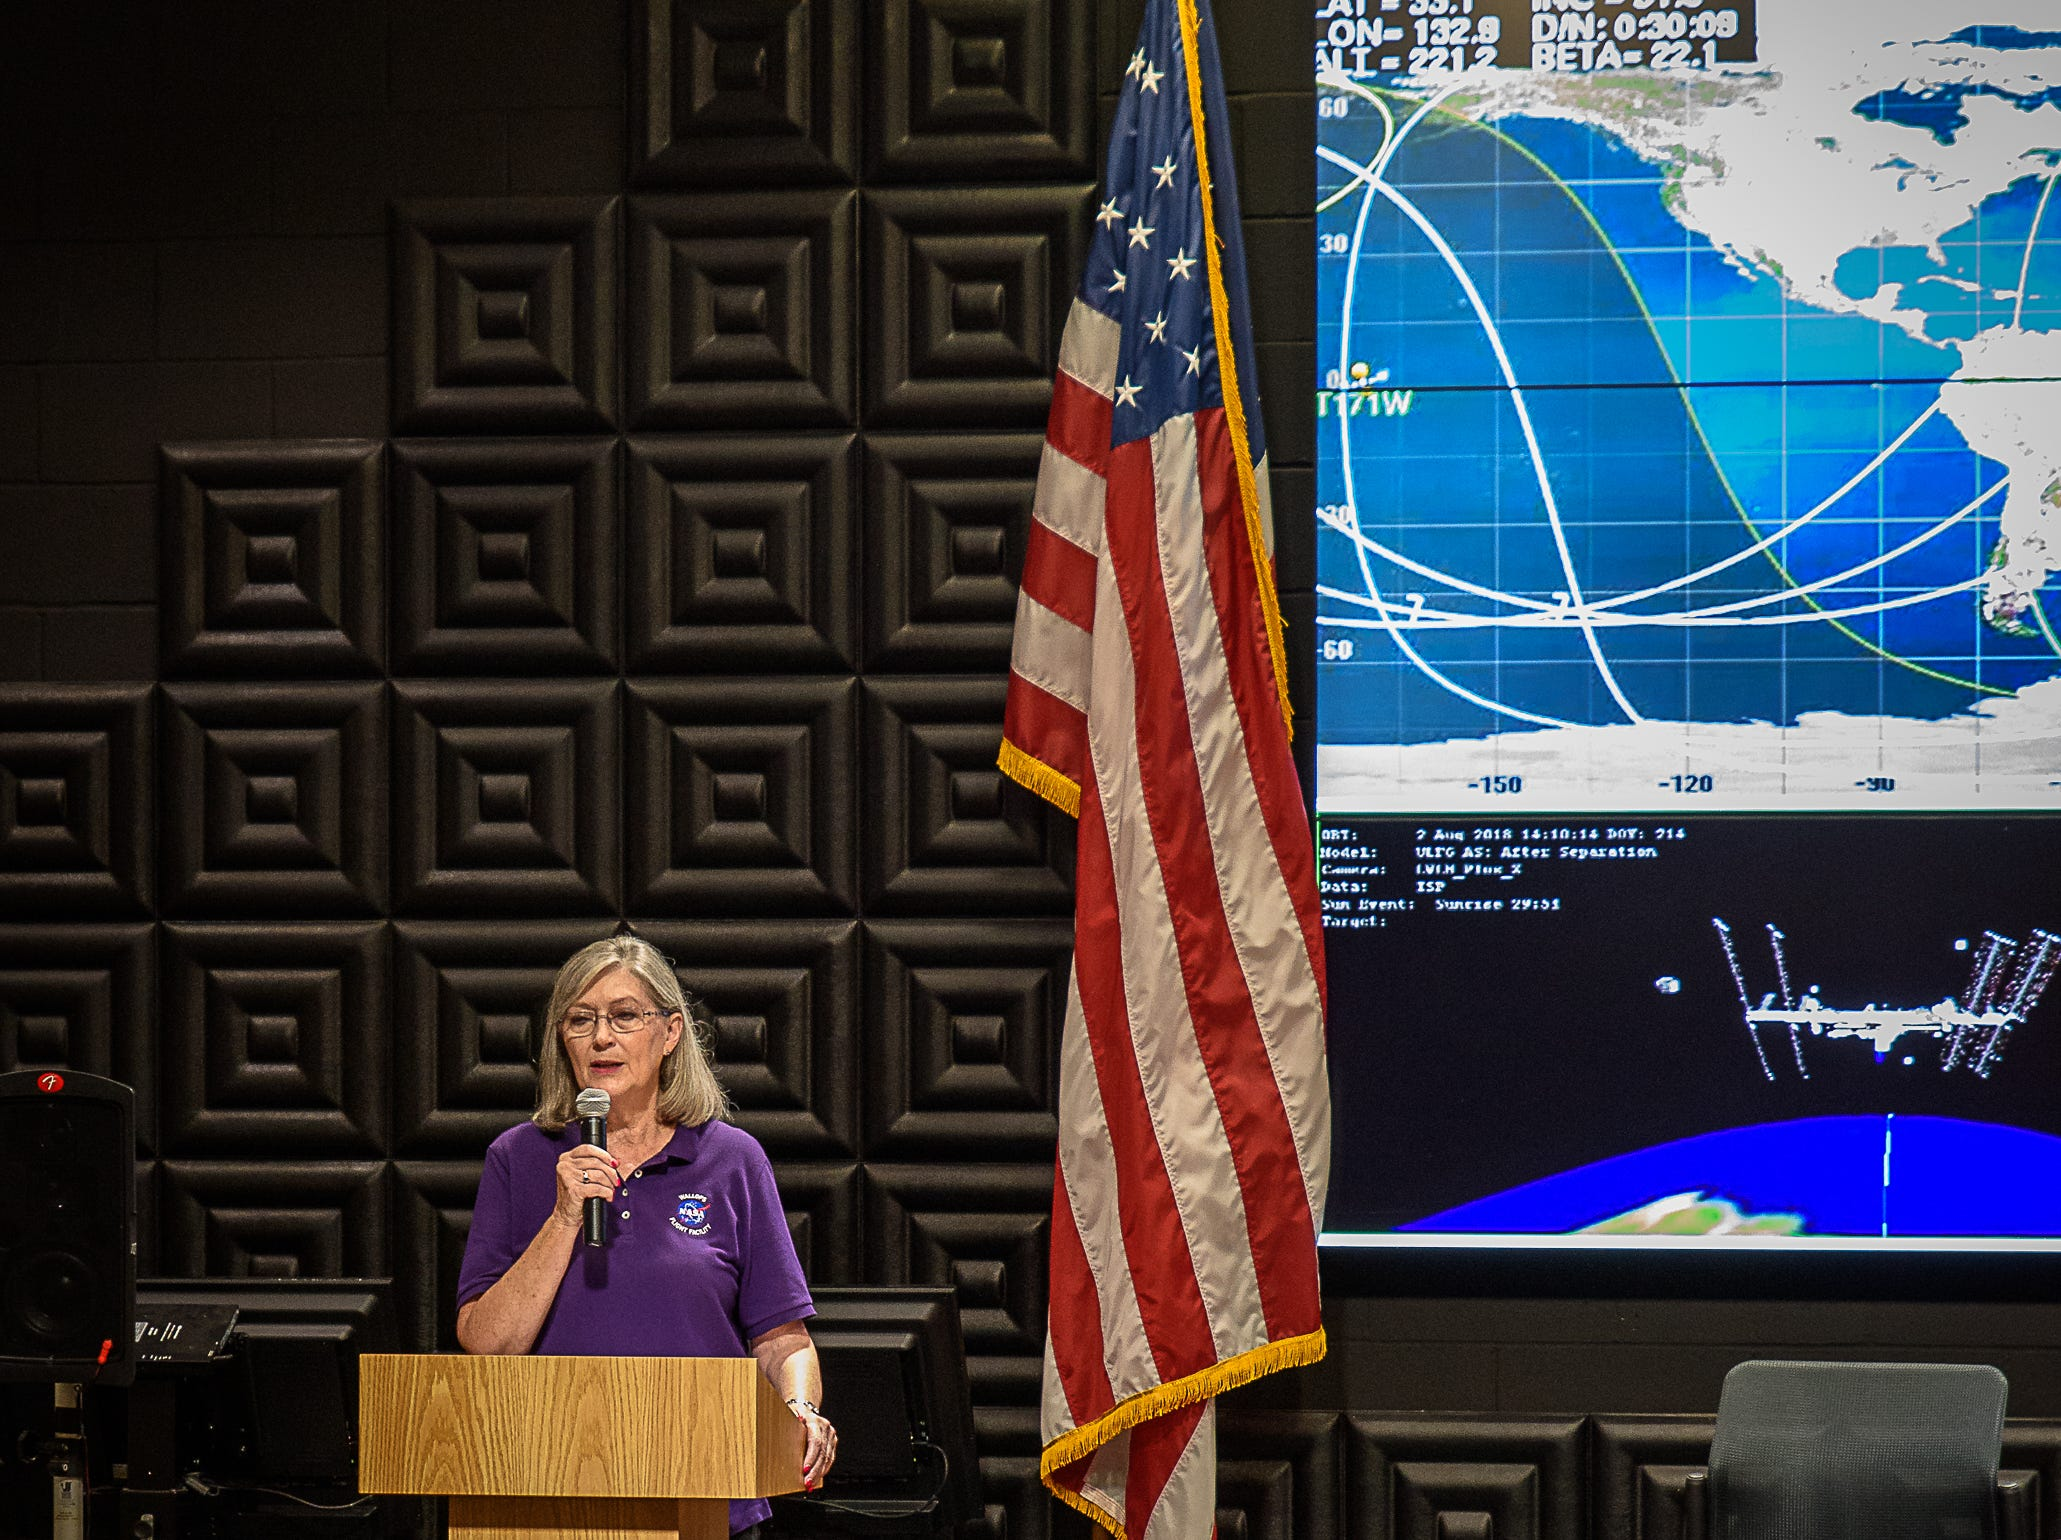 Dr. Joyce Winterton speaks in front of a crowd of people at the NASA Wallops Flight Facility in Virginia. Students spoke with astronauts aboard the International Space Station as part of NASA's Year of Education on Station on Aug. 2, 2018.